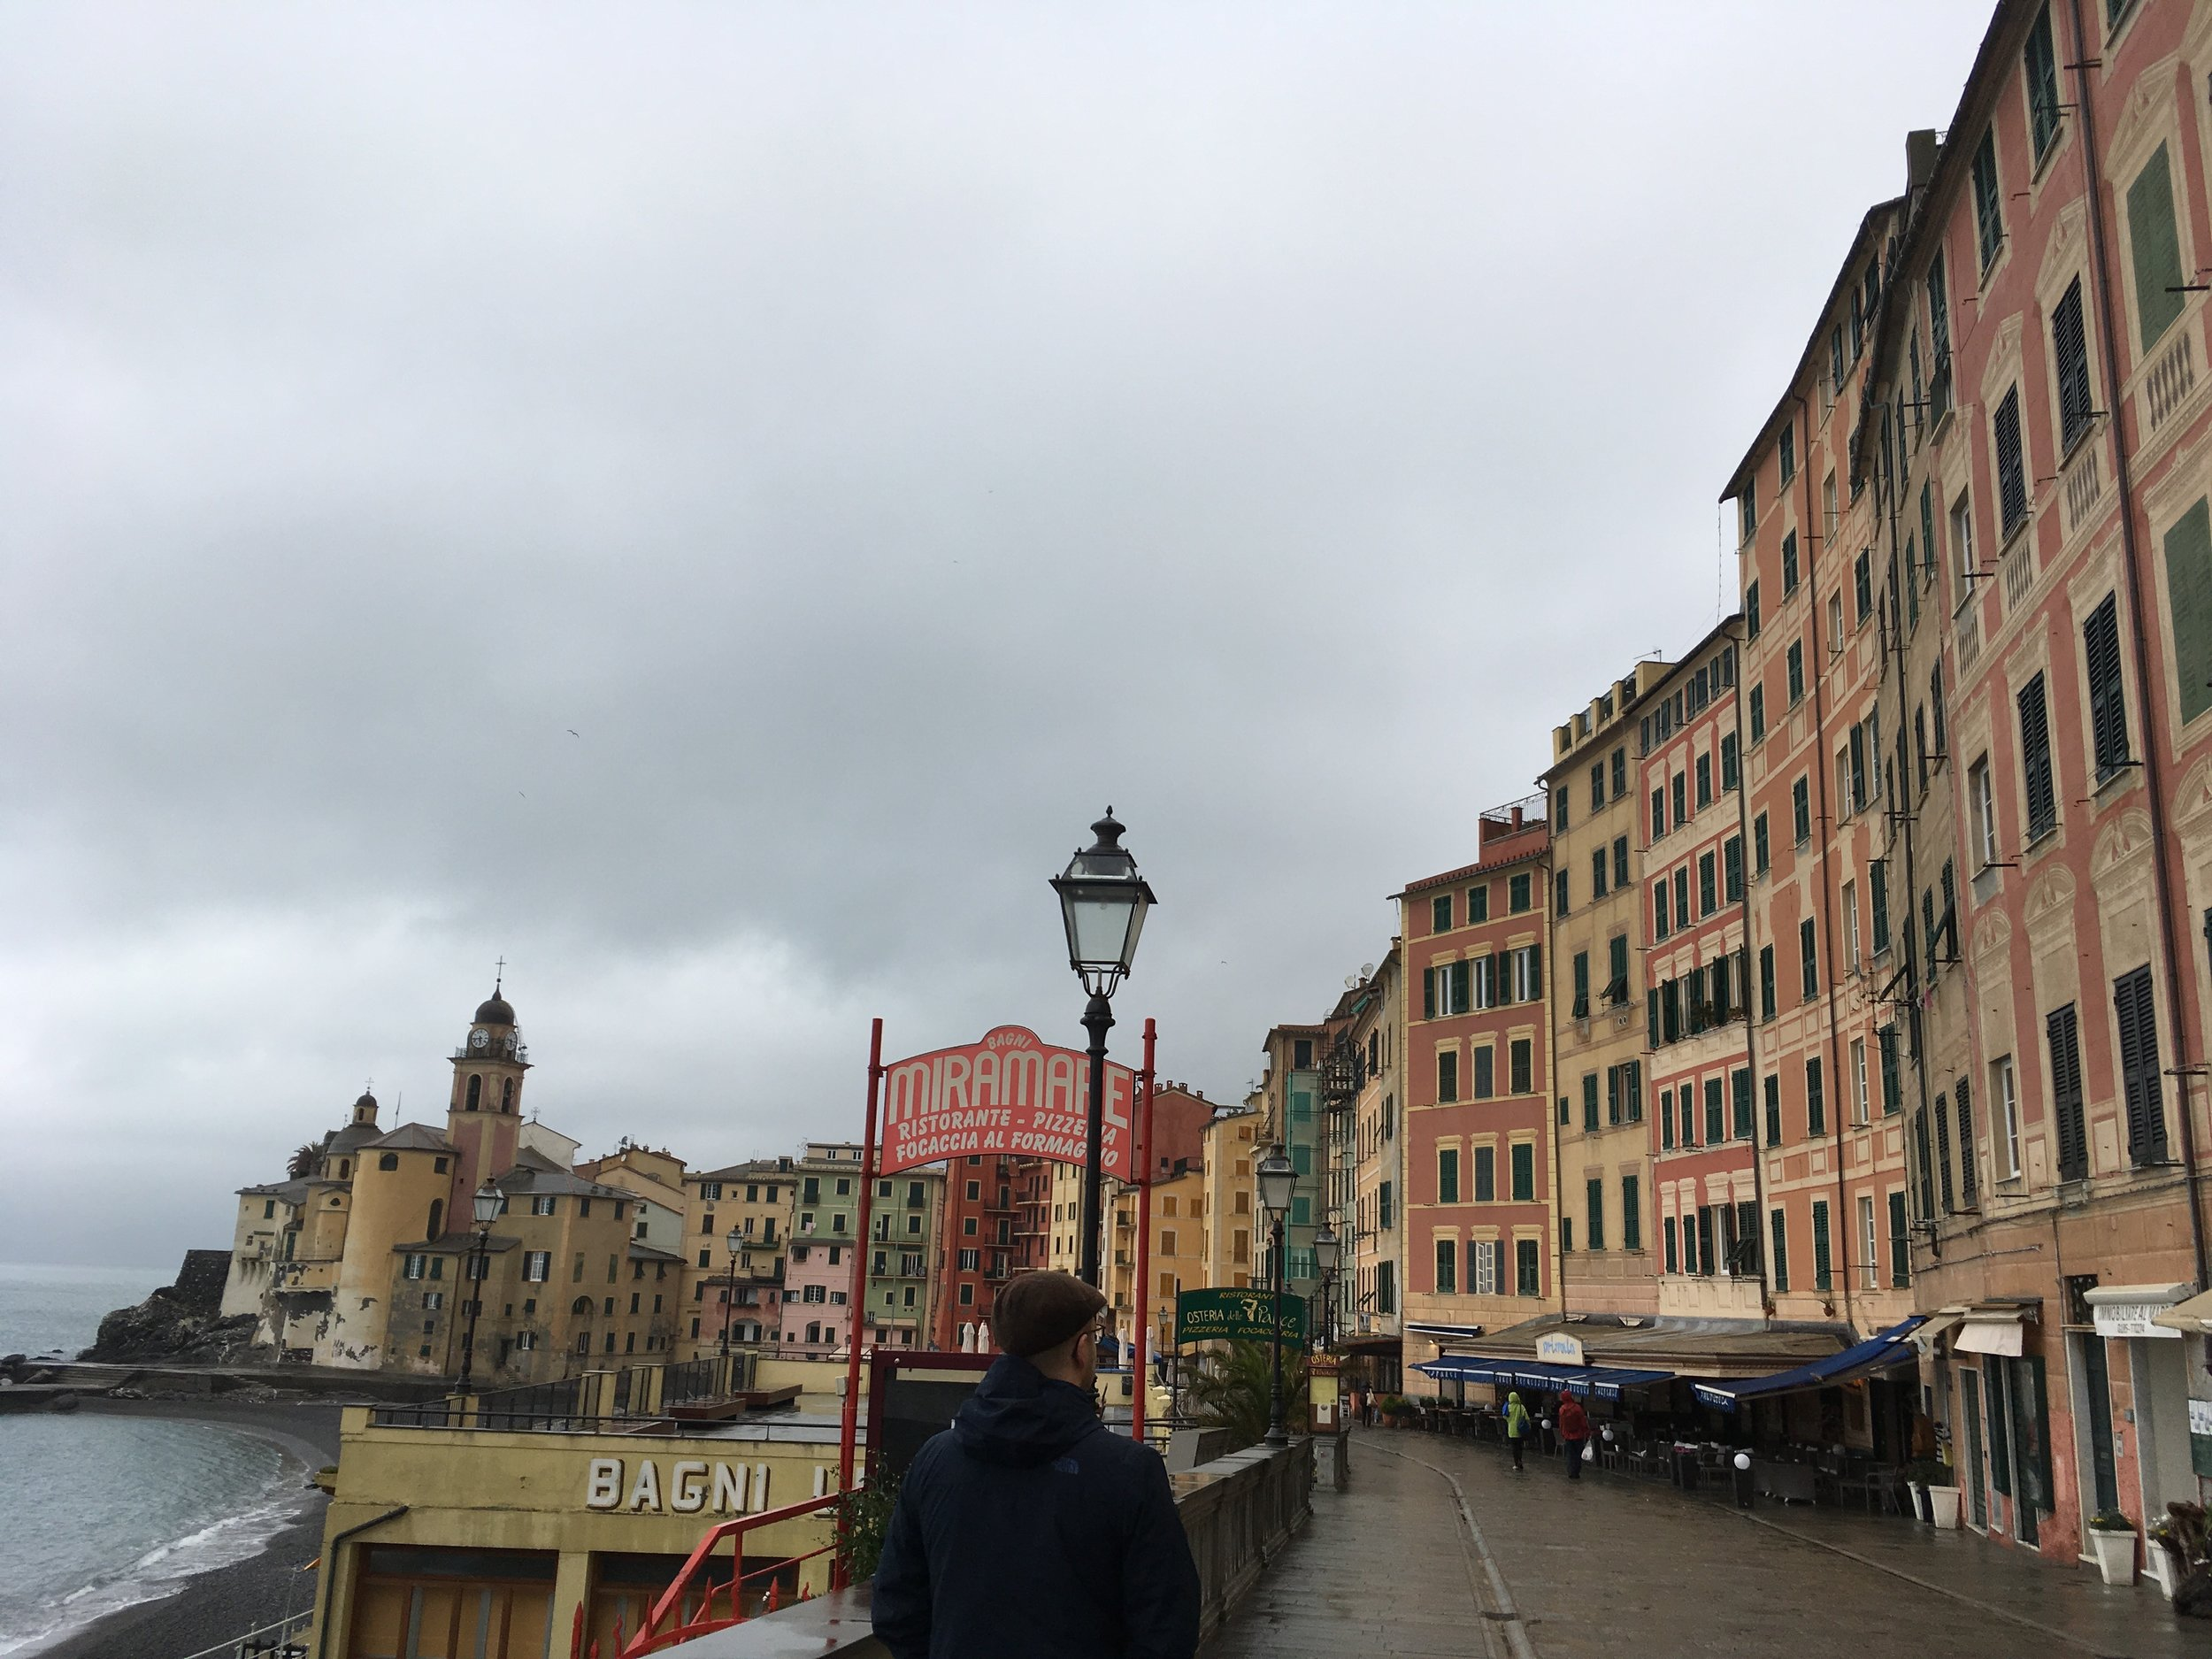 Camogli on a rainy afternoon